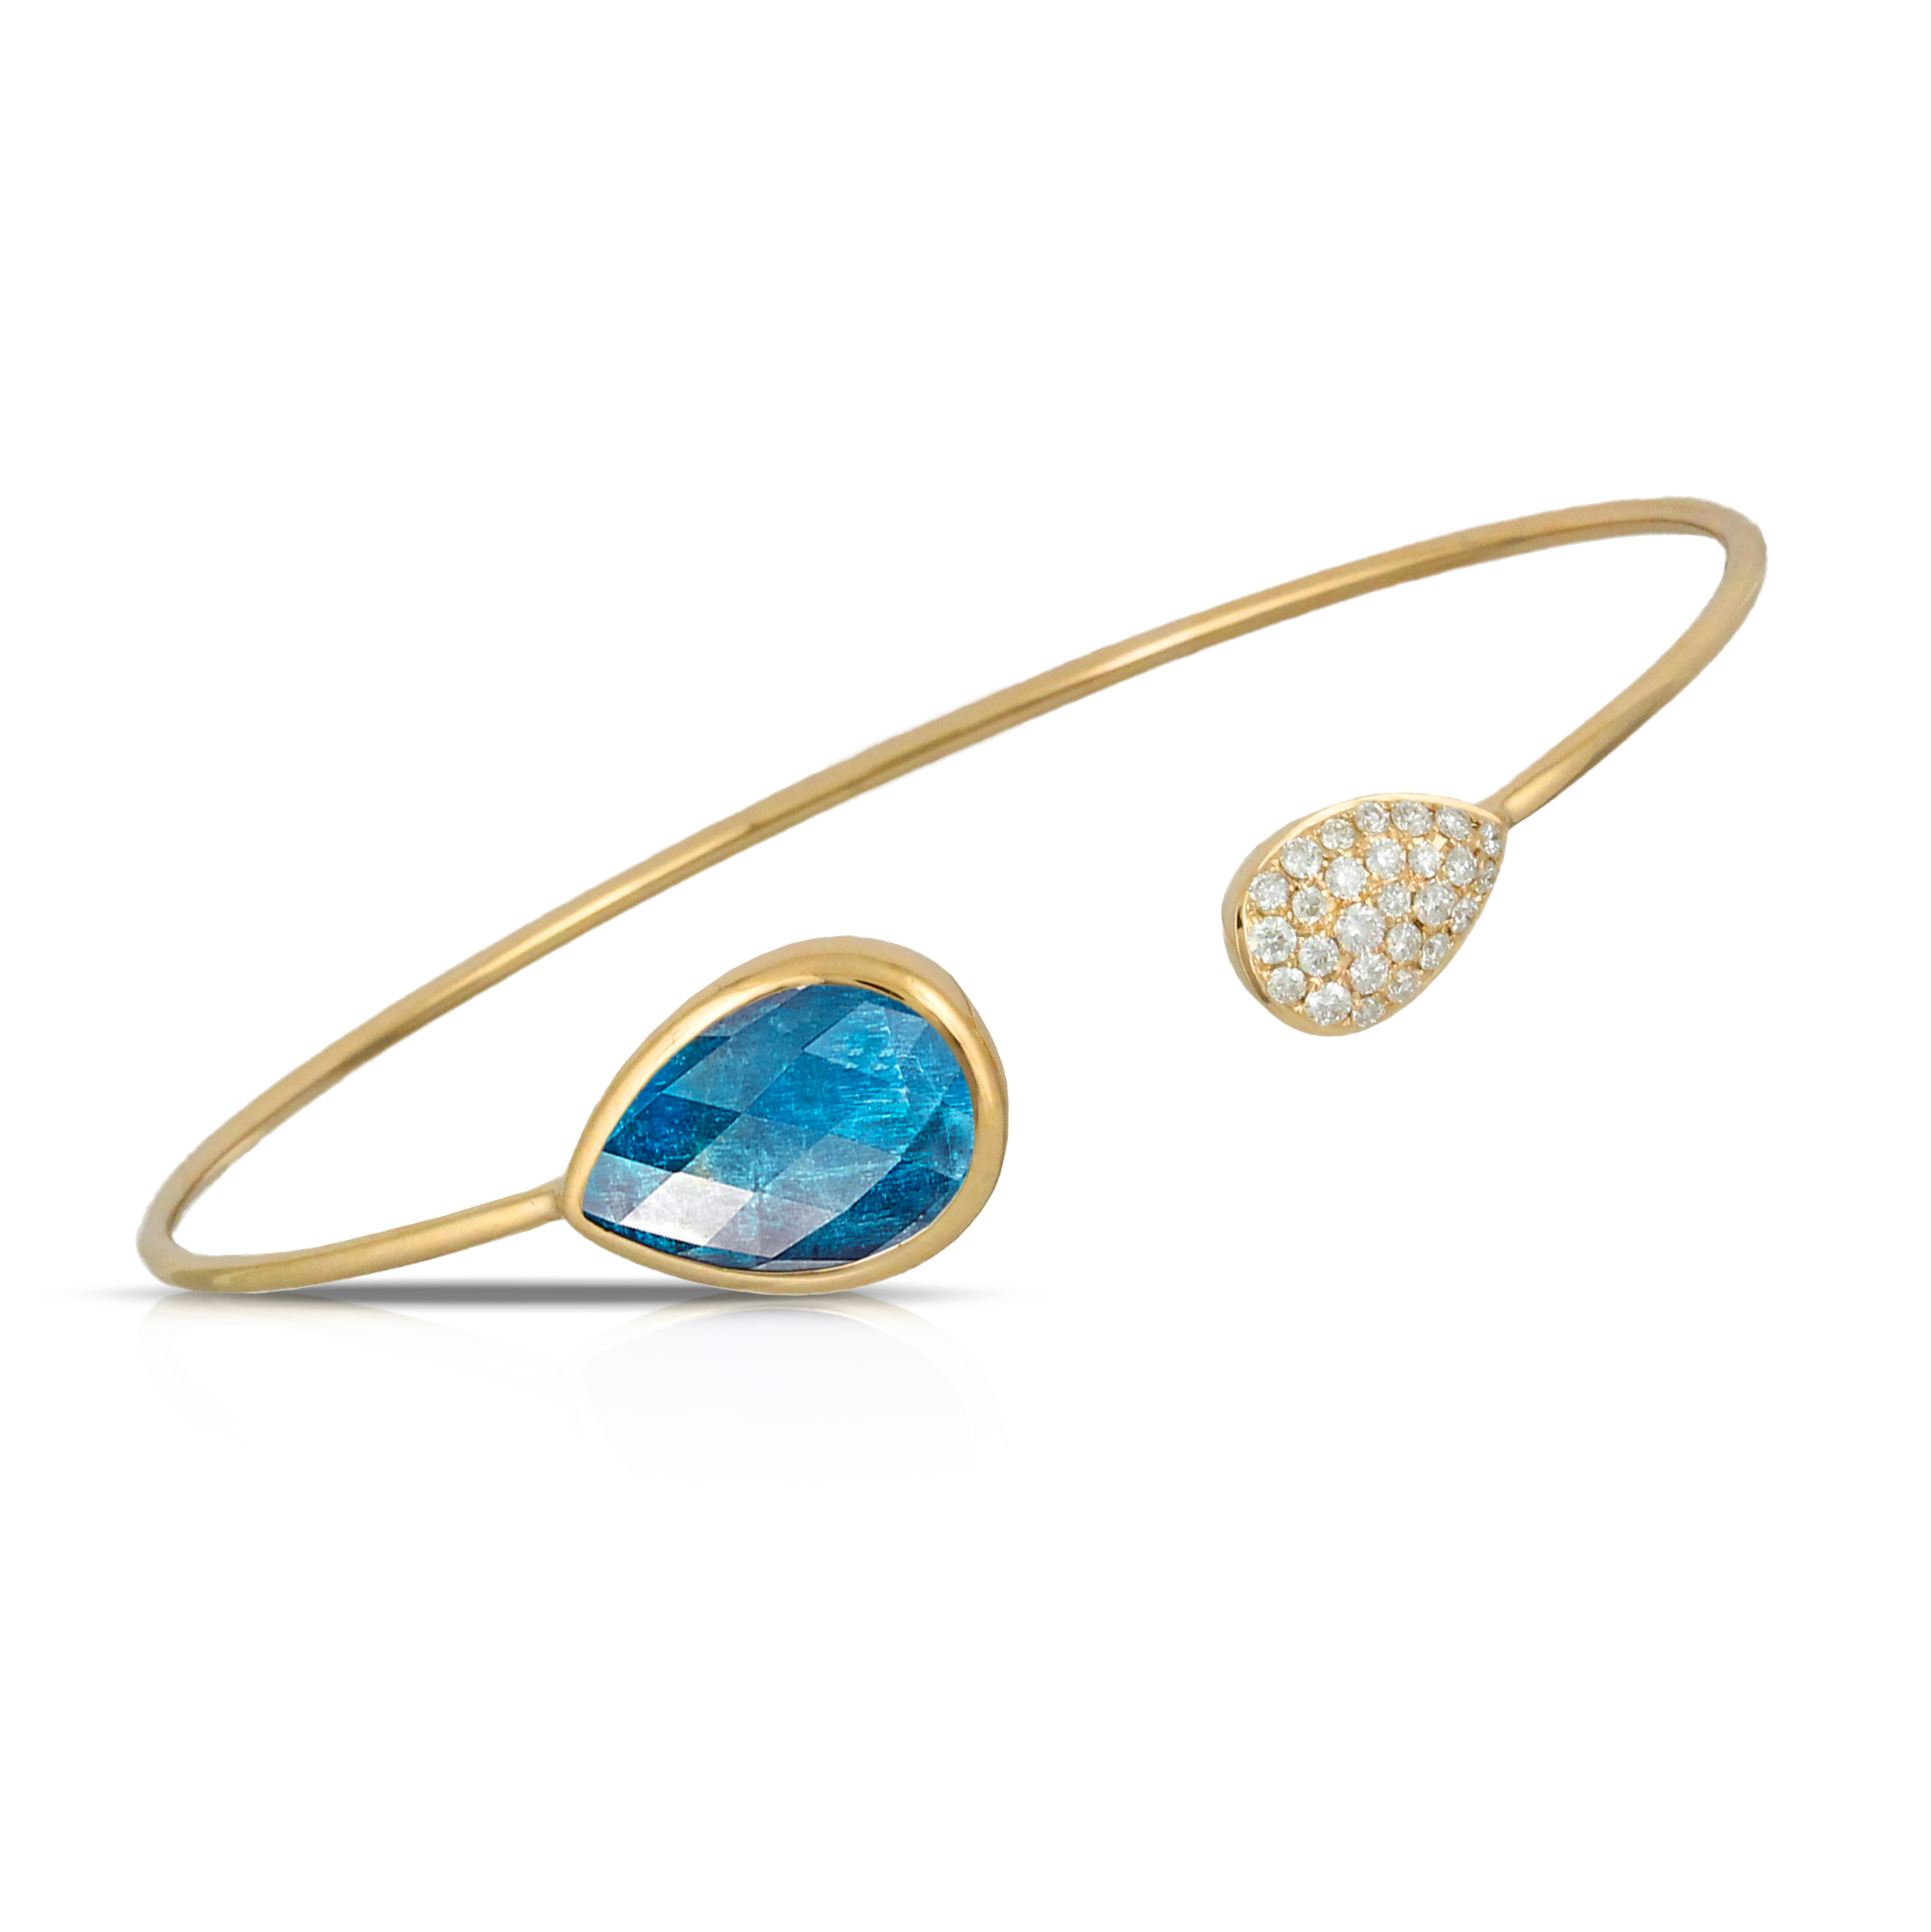 18K Yellow Gold Apatite Bangle Bracelet - 18K Yellow Gold Diamond Bangle With Clear Quartz Over Apatite